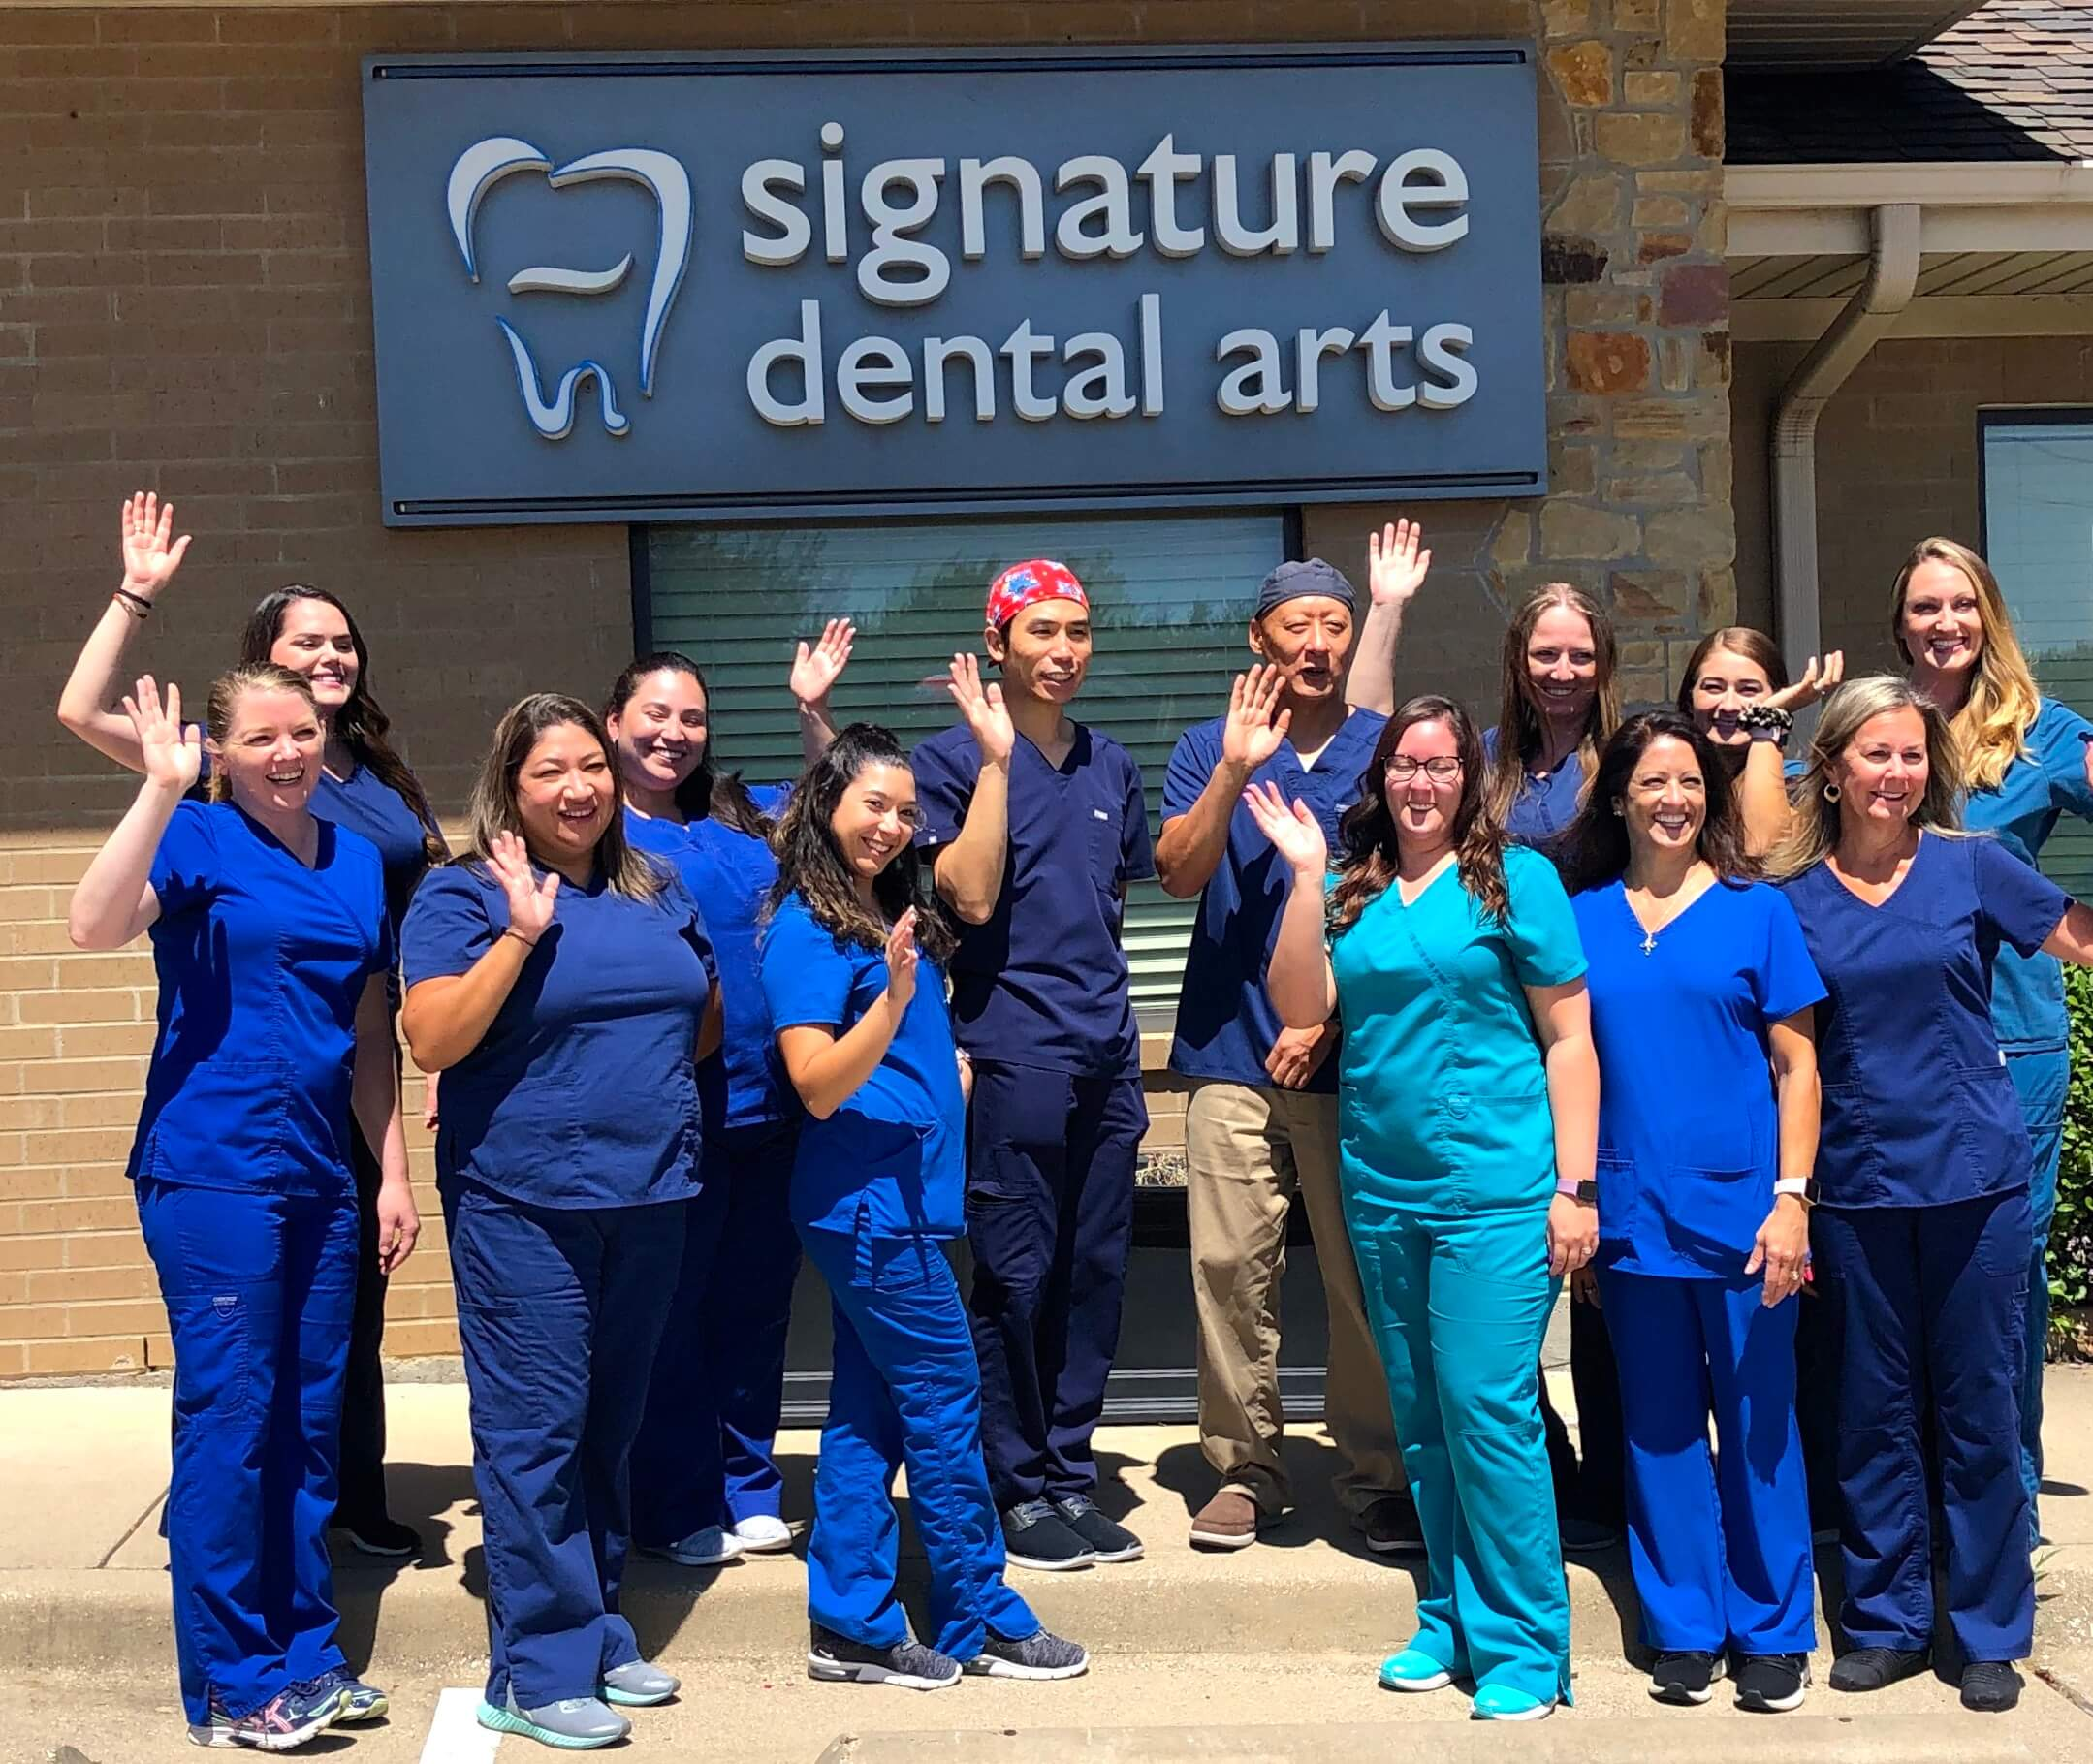 Team Signature Dental Arts